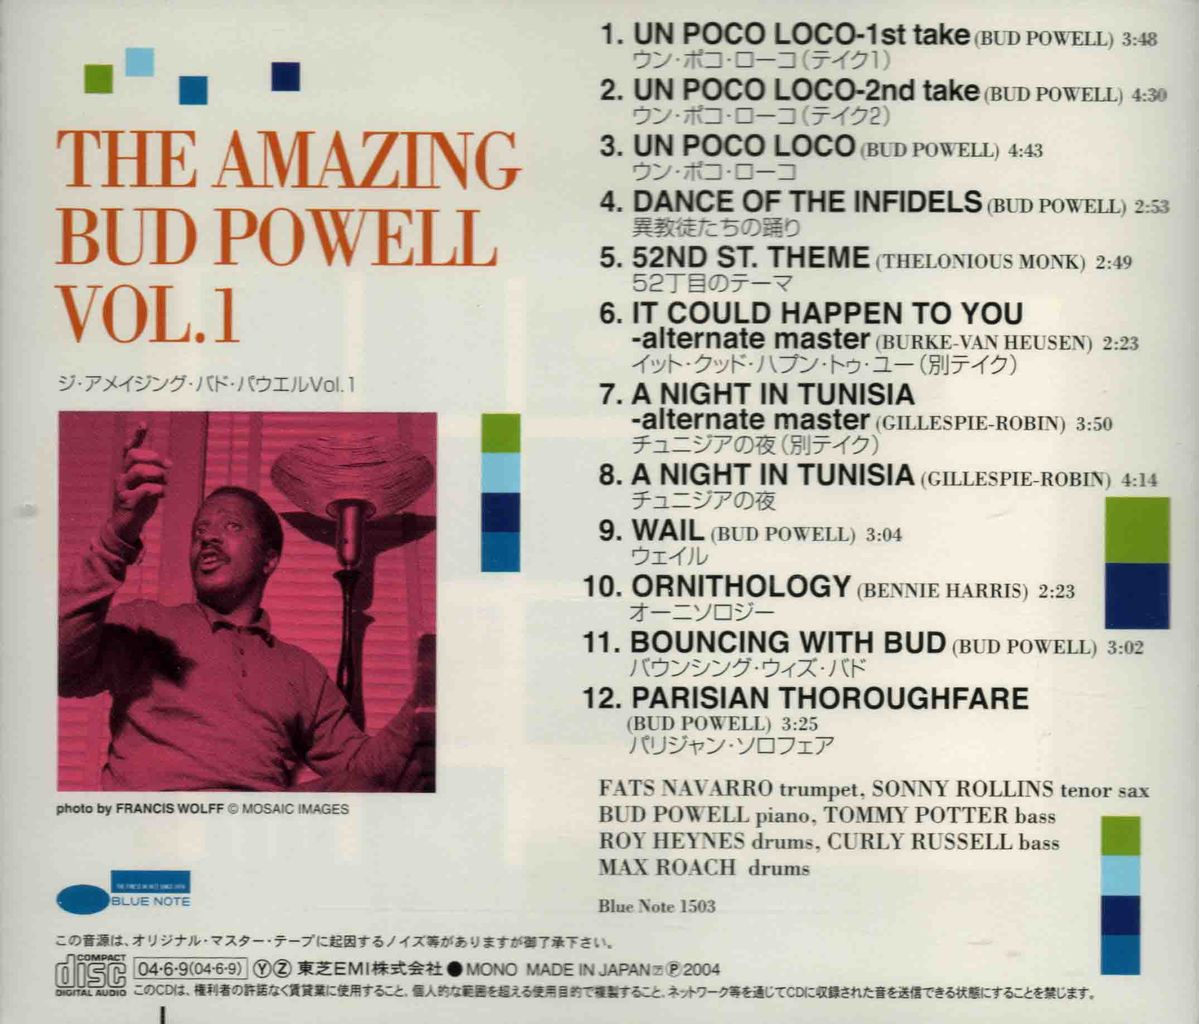 THE AMAZING BUD POWELL VOL.1-2